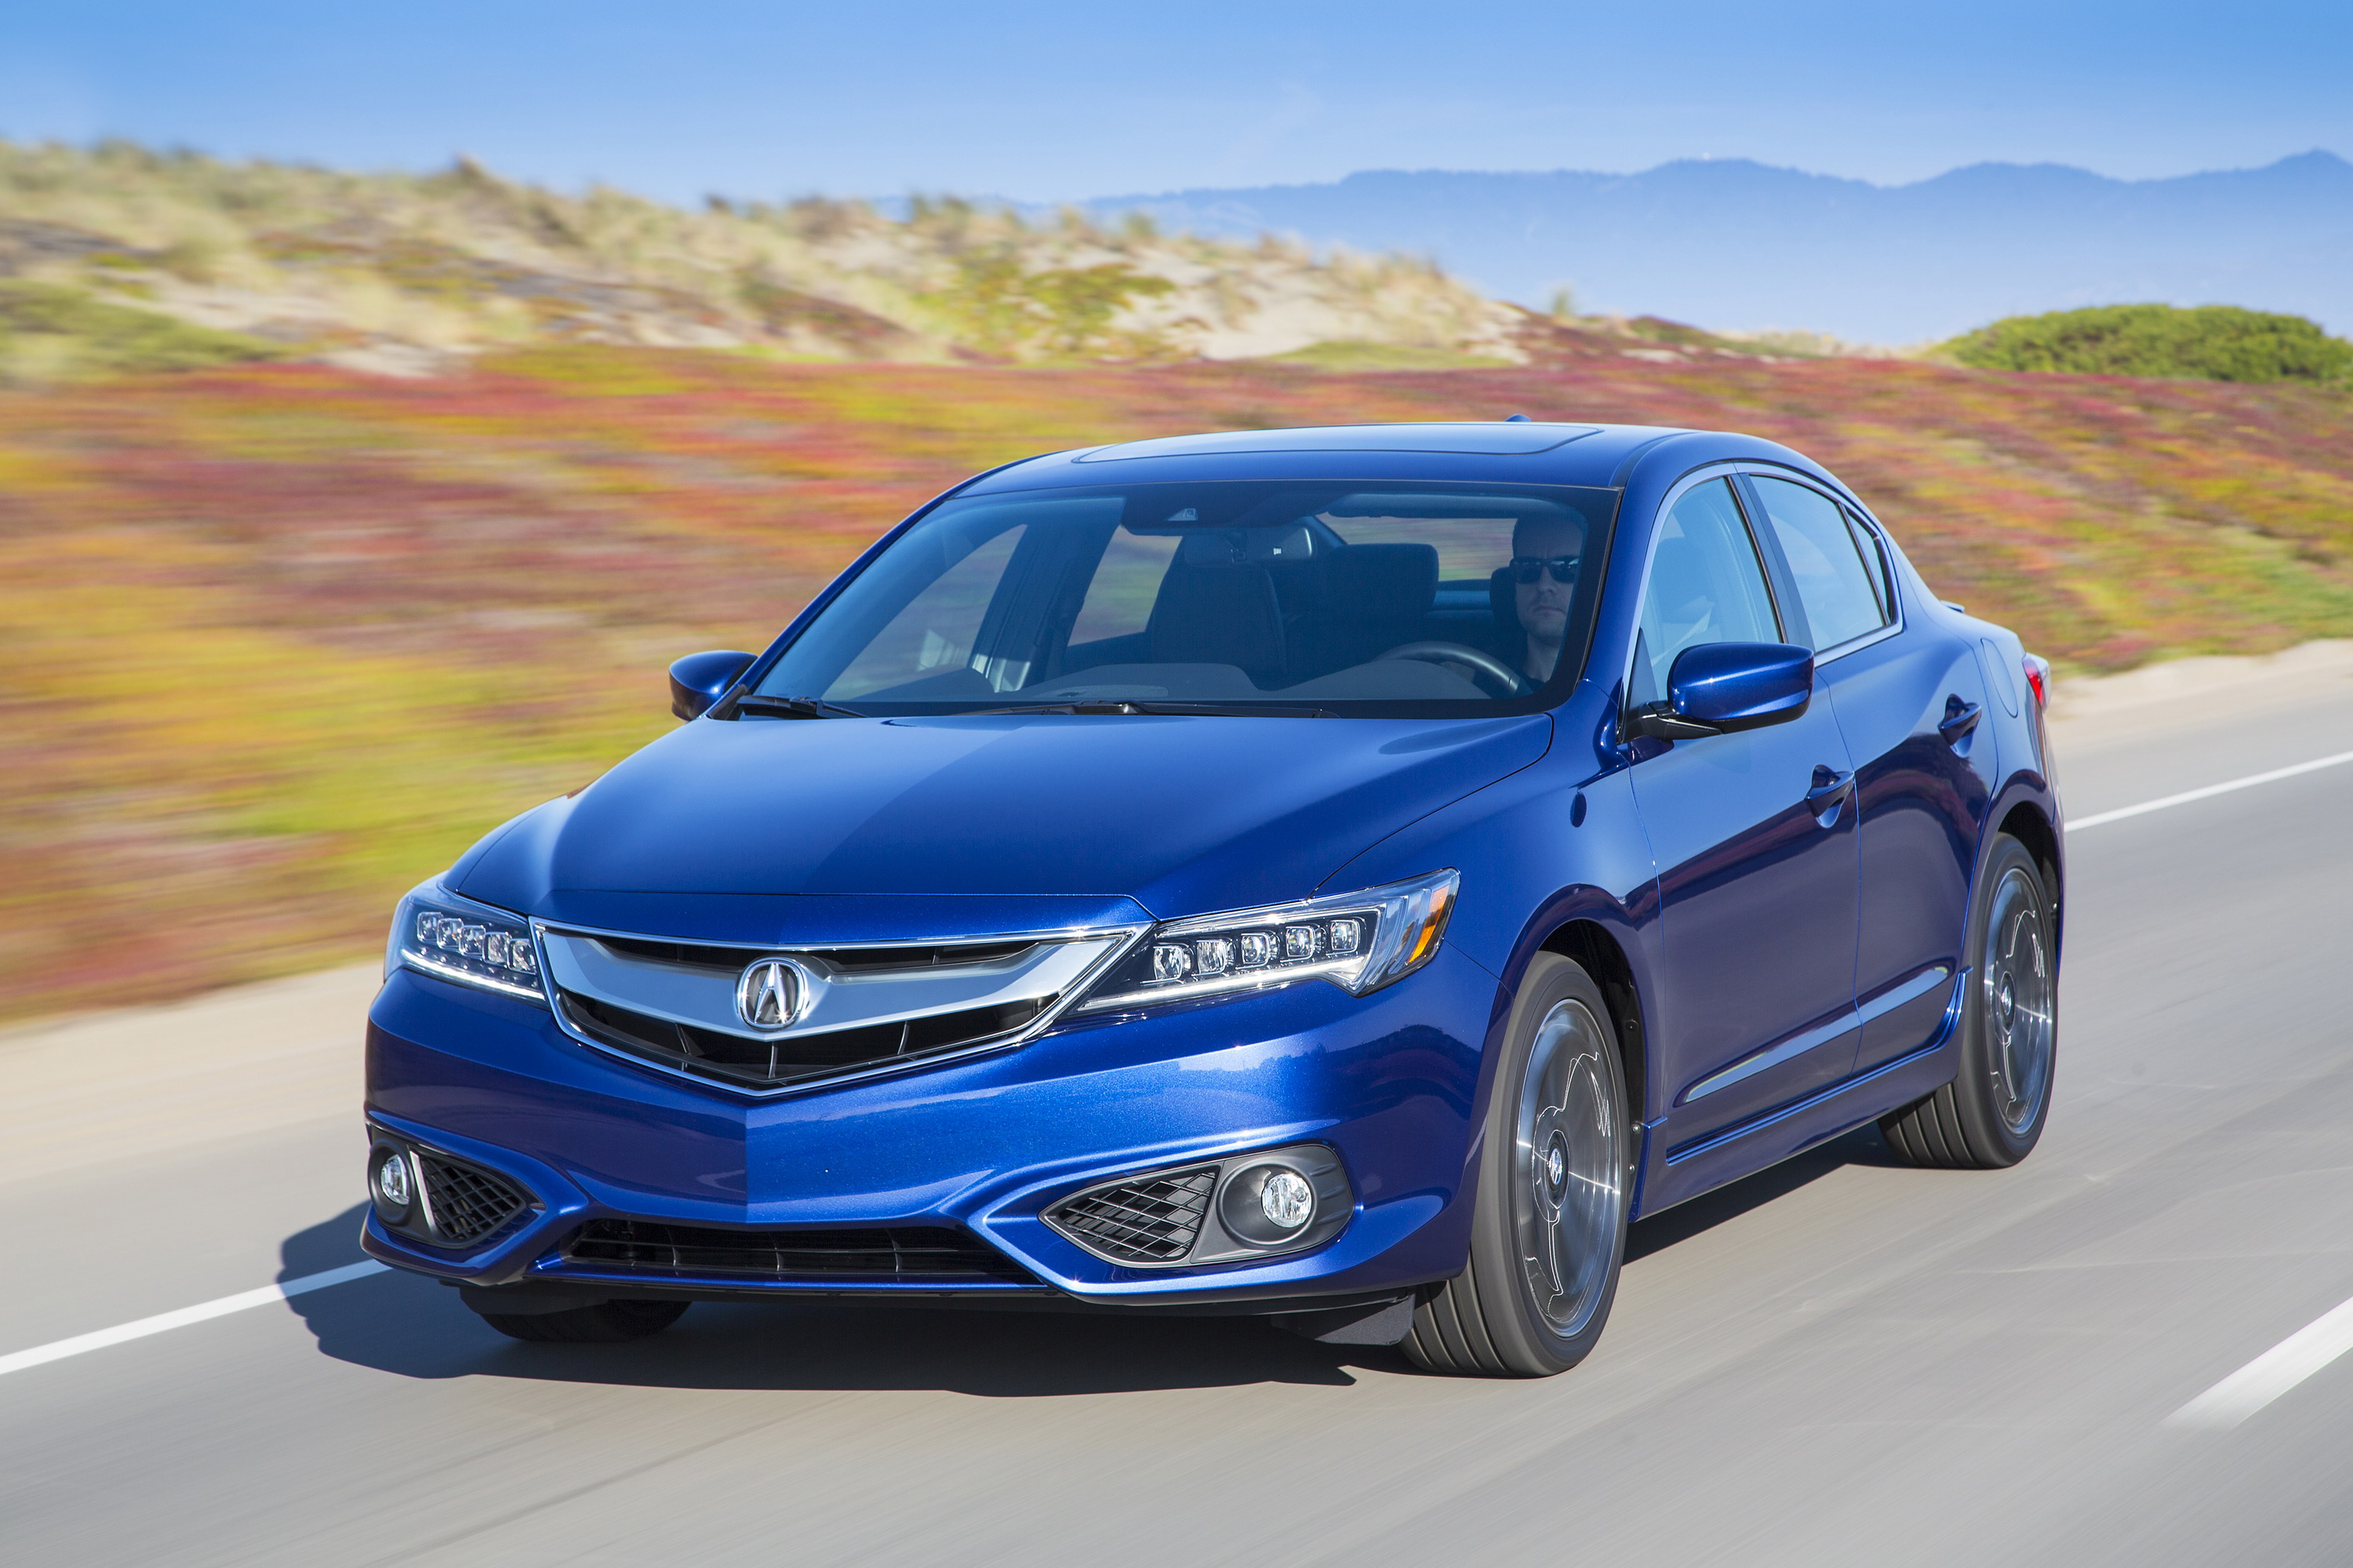 owned htm index technology with vehicles new center los angeles featured you dealership package on acura centered pre rlx